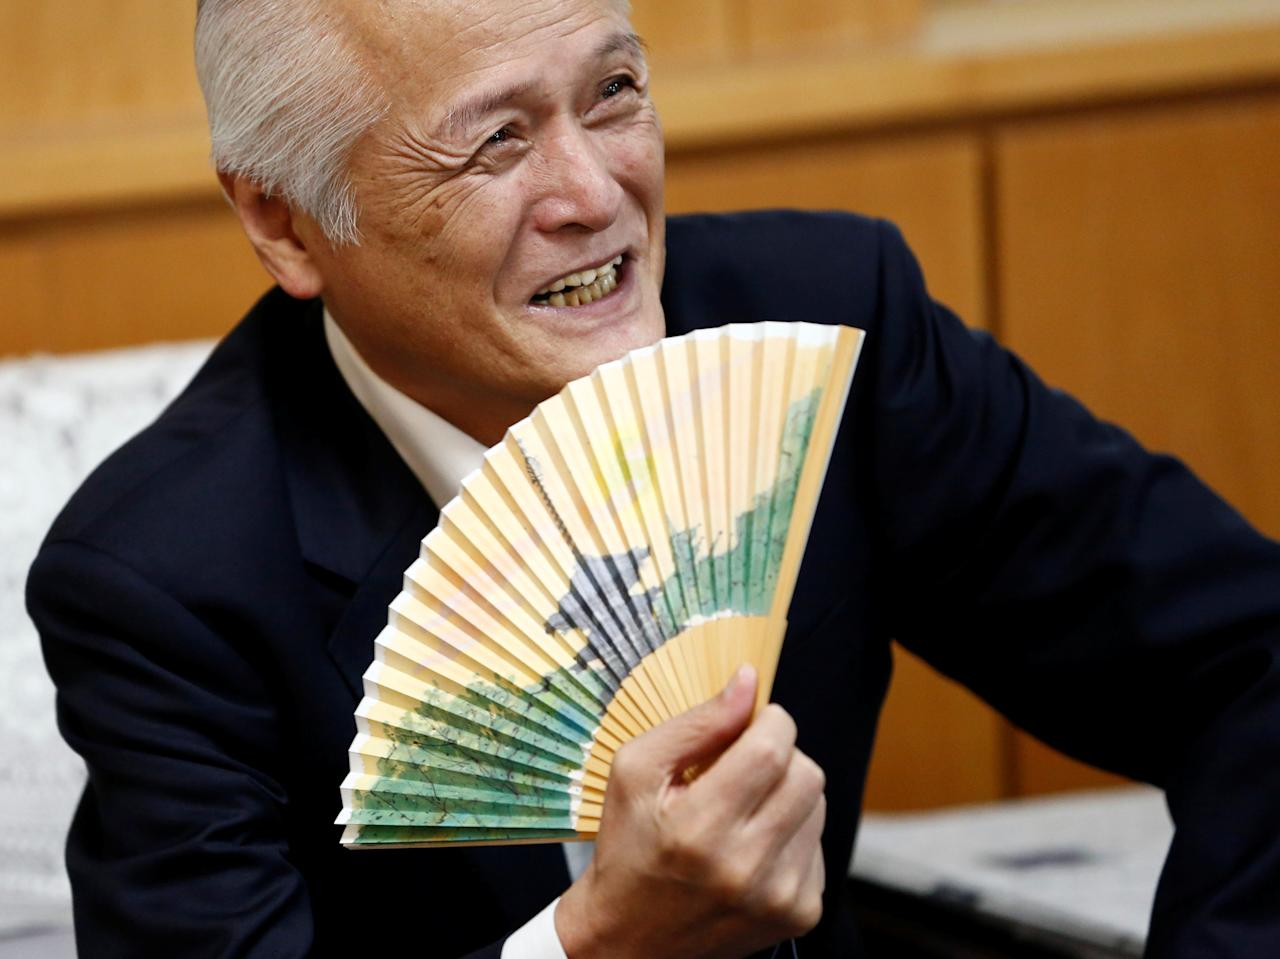 Japan's Environment Minister Koichi Yamamoto speaks during an interview with Reuters in Tokyo, Japan June 29, 2017. REUTERS/Kim Kyung-Hoon